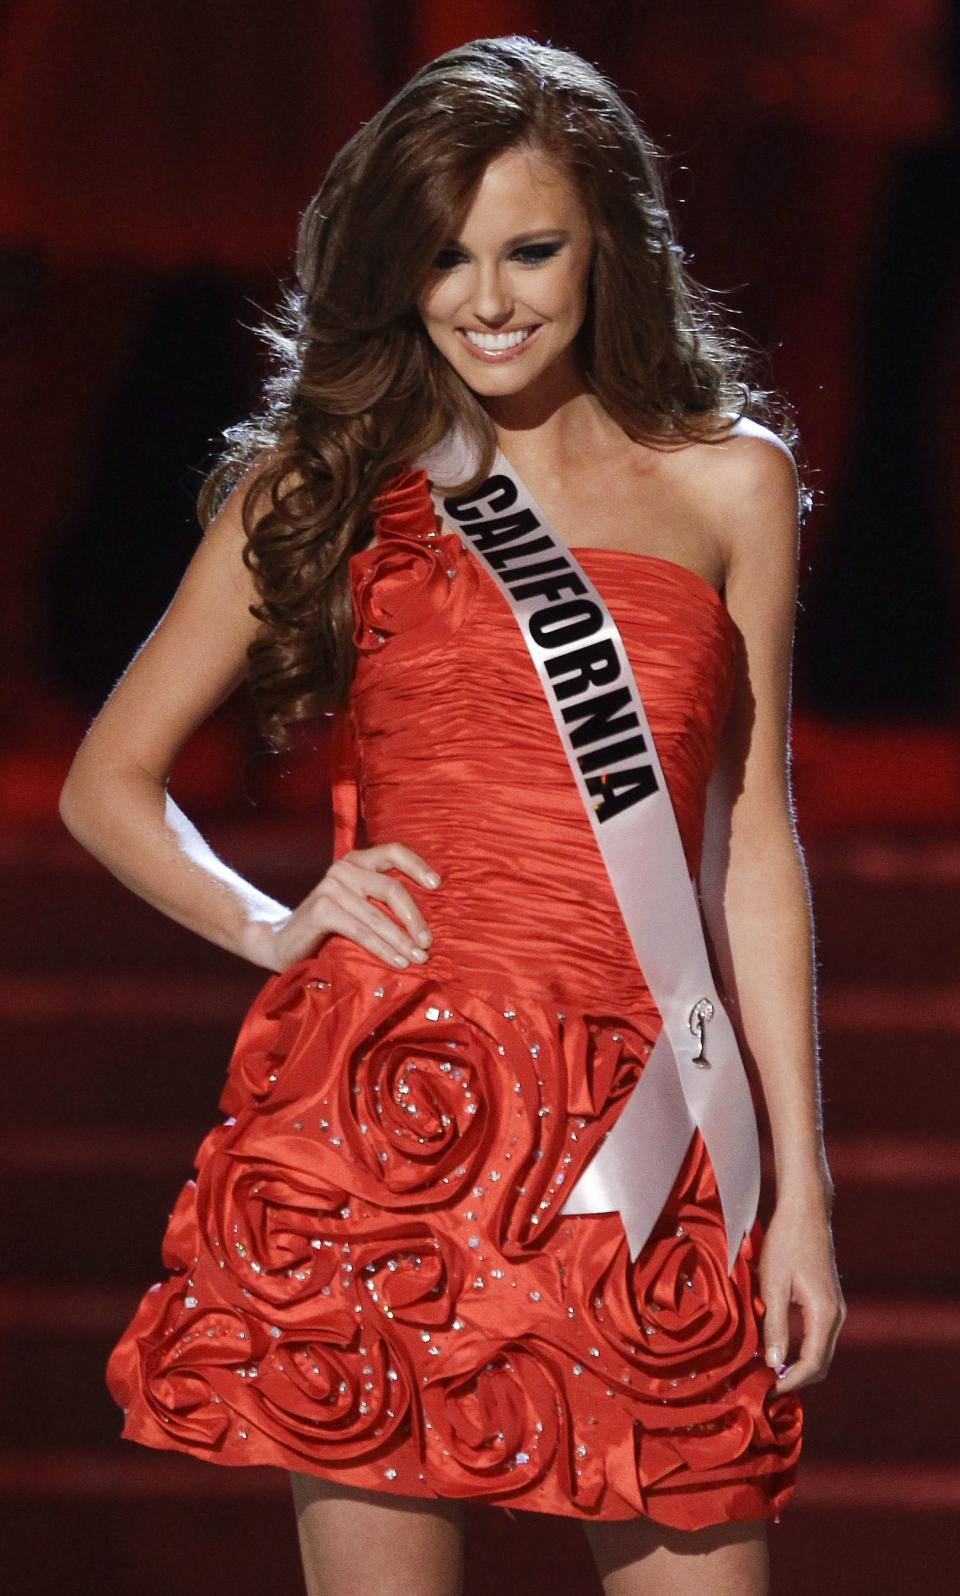 Alyssa Campanella, Miss California, is introduced as one of the quarterfinals in the Miss USA pageant, Sunday, June 19, 2011, in Las Vegas.  (AP Photo/Julie Jacobson)